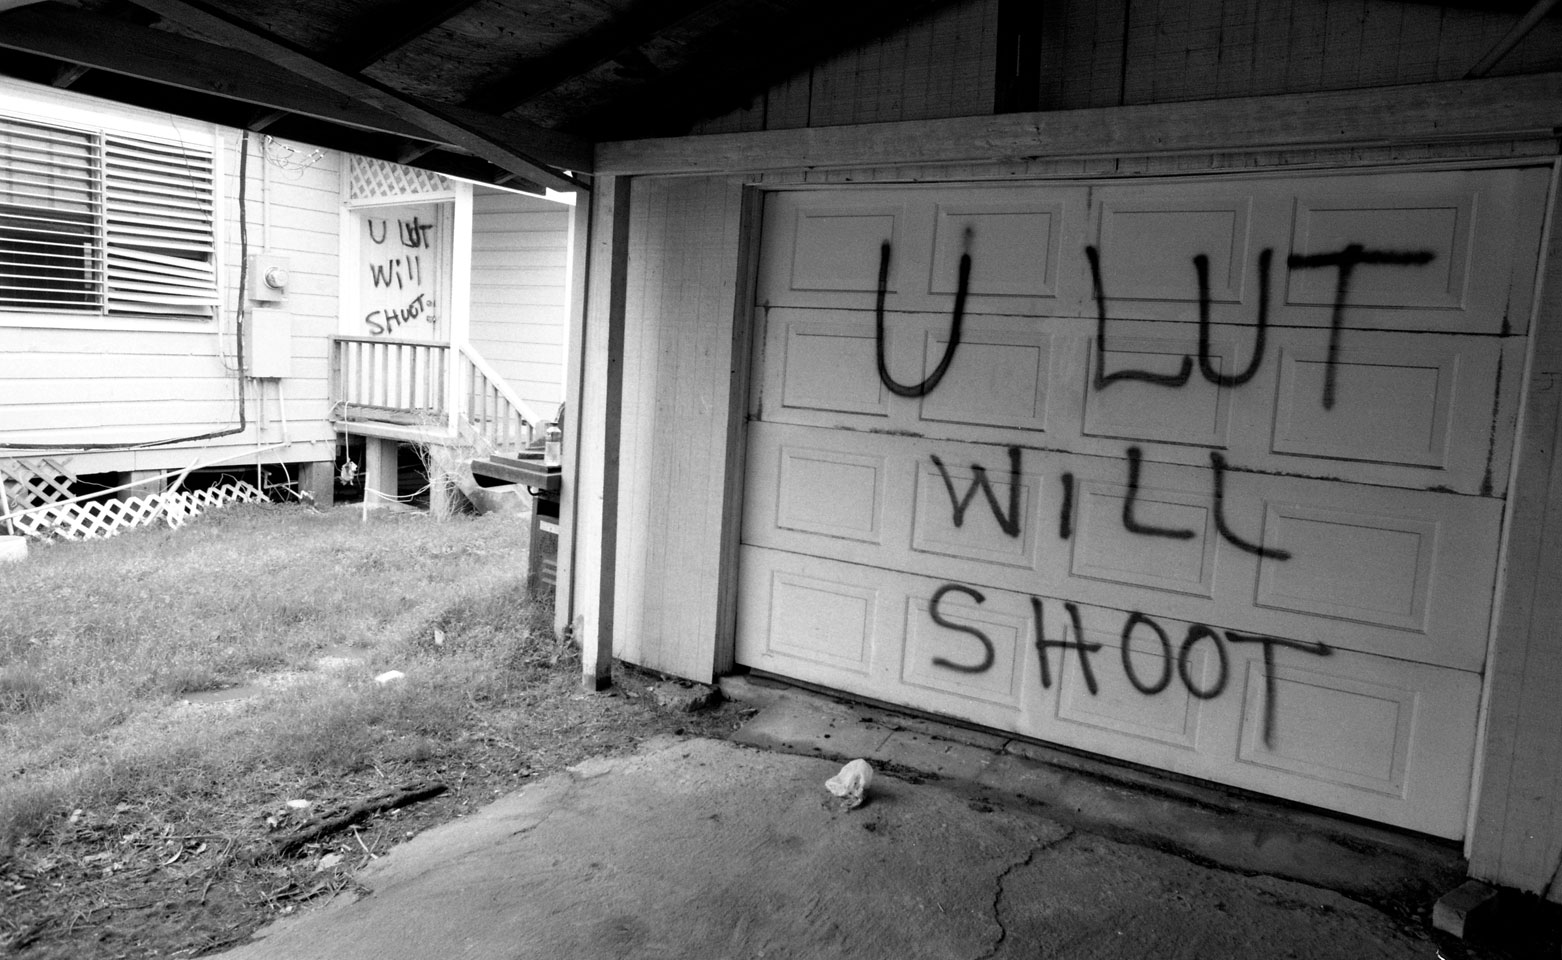 U Lut Will Shoot